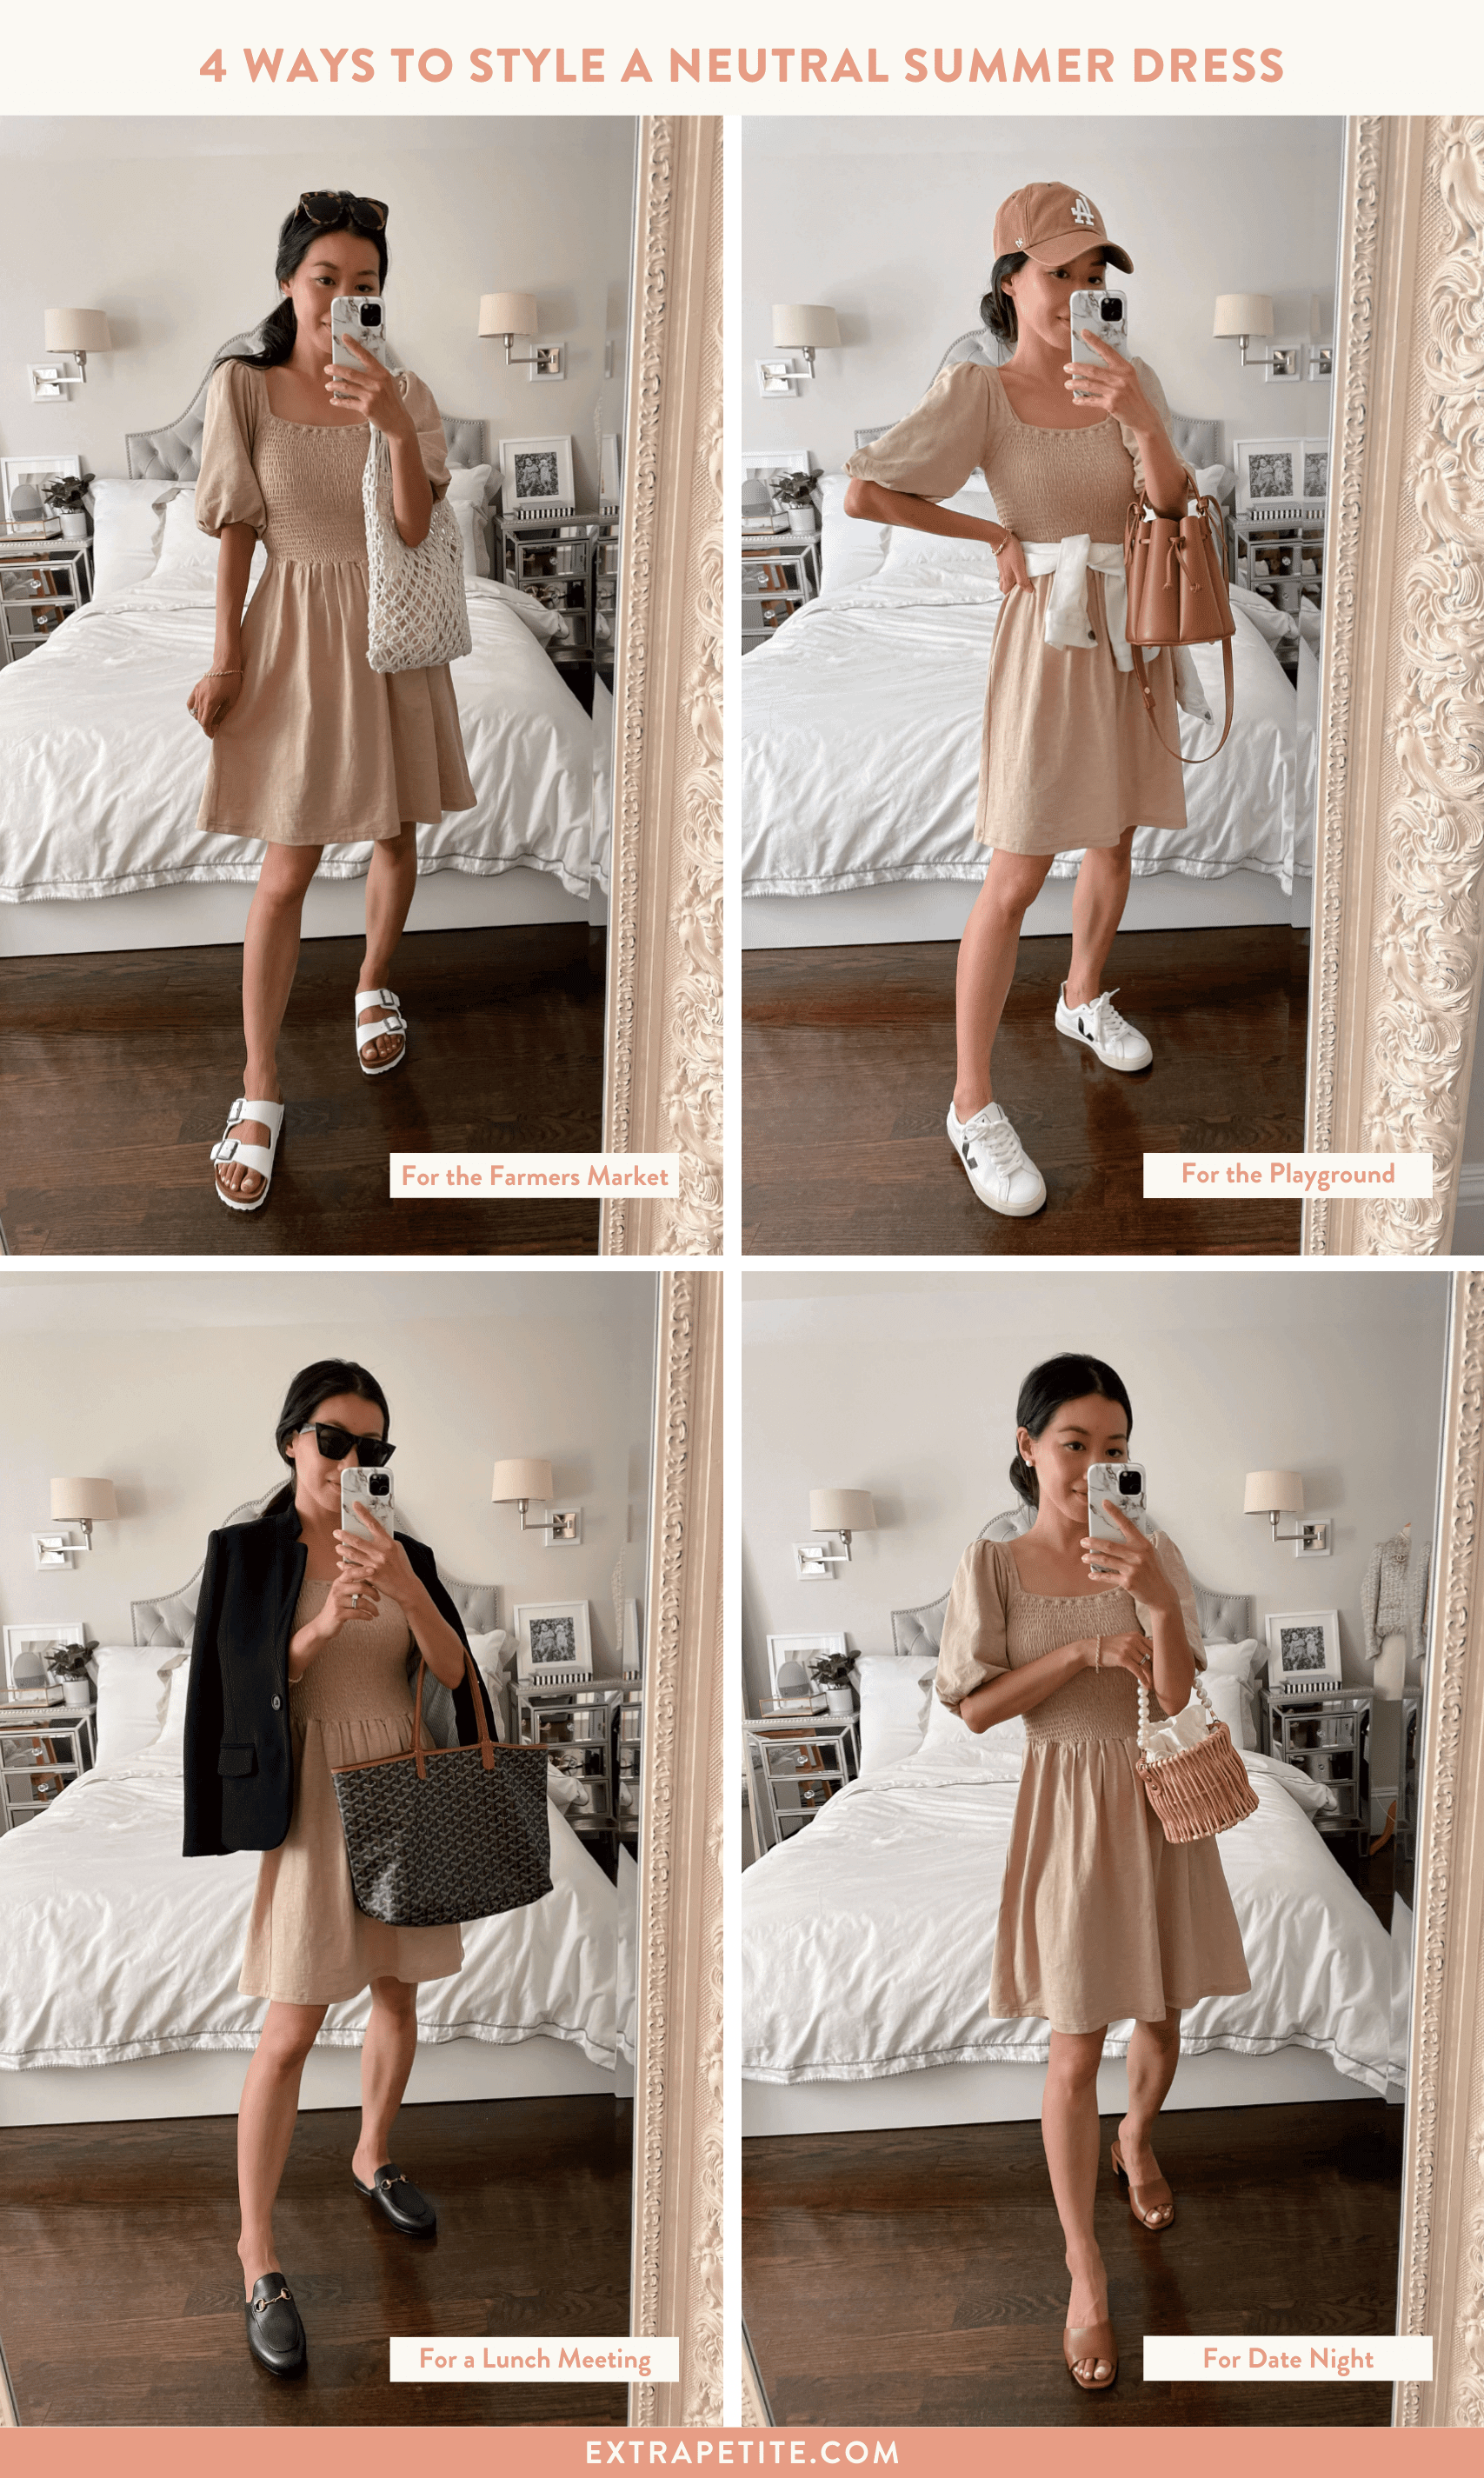 4 ways to style a neutral summer dress